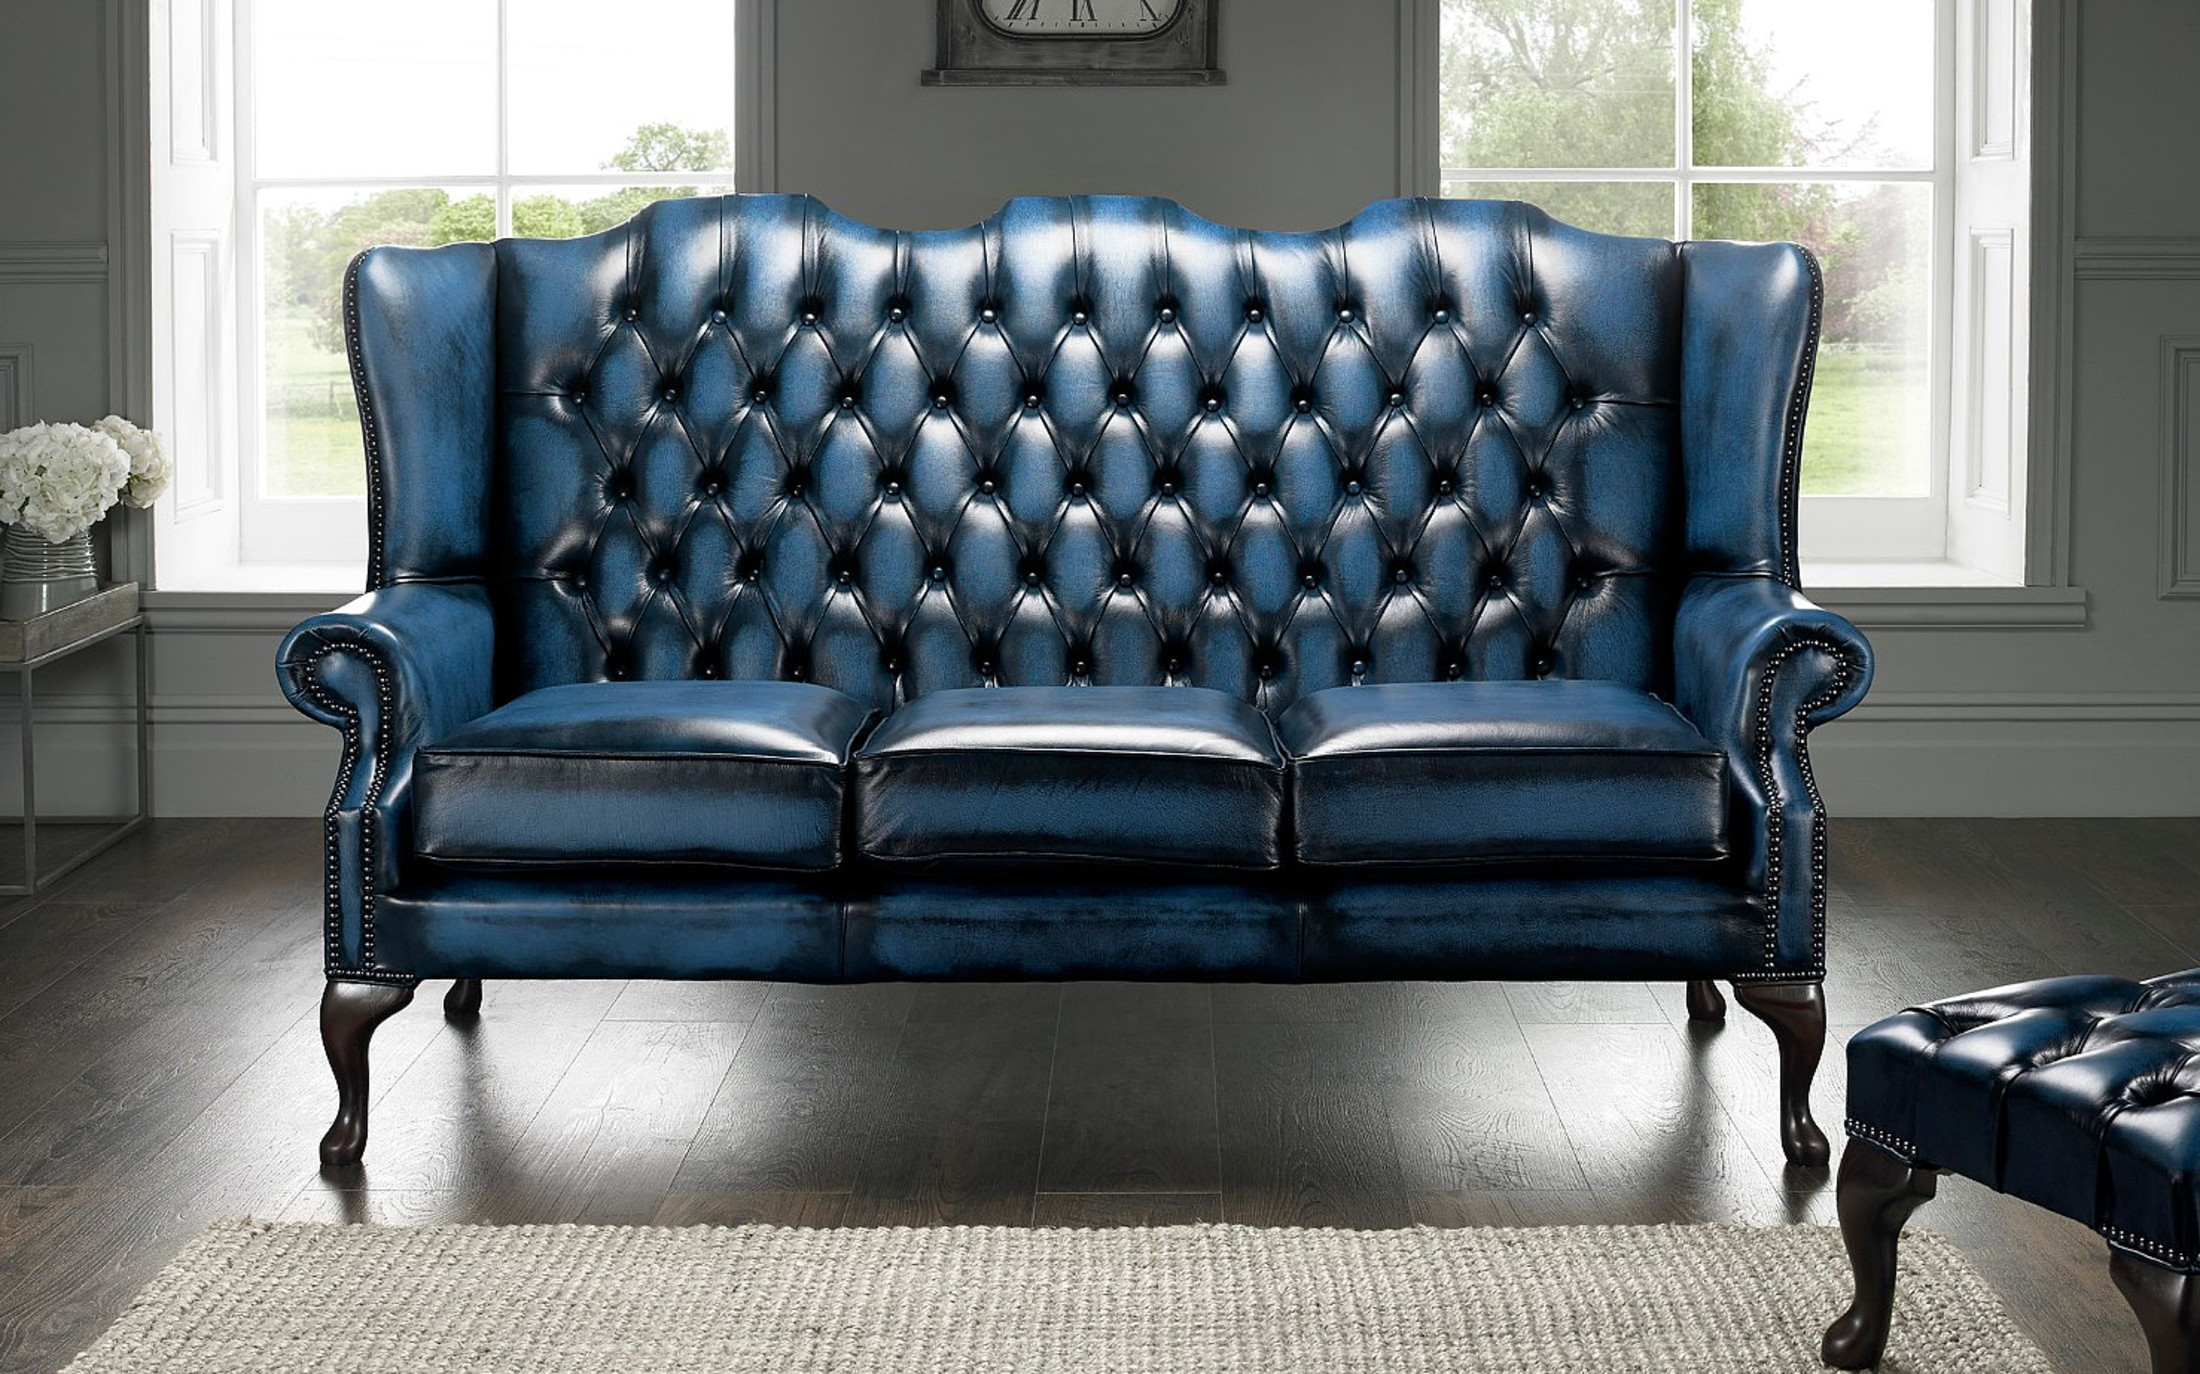 Chesterfield Highback Leather Sofa 3 Seater Antique Blue